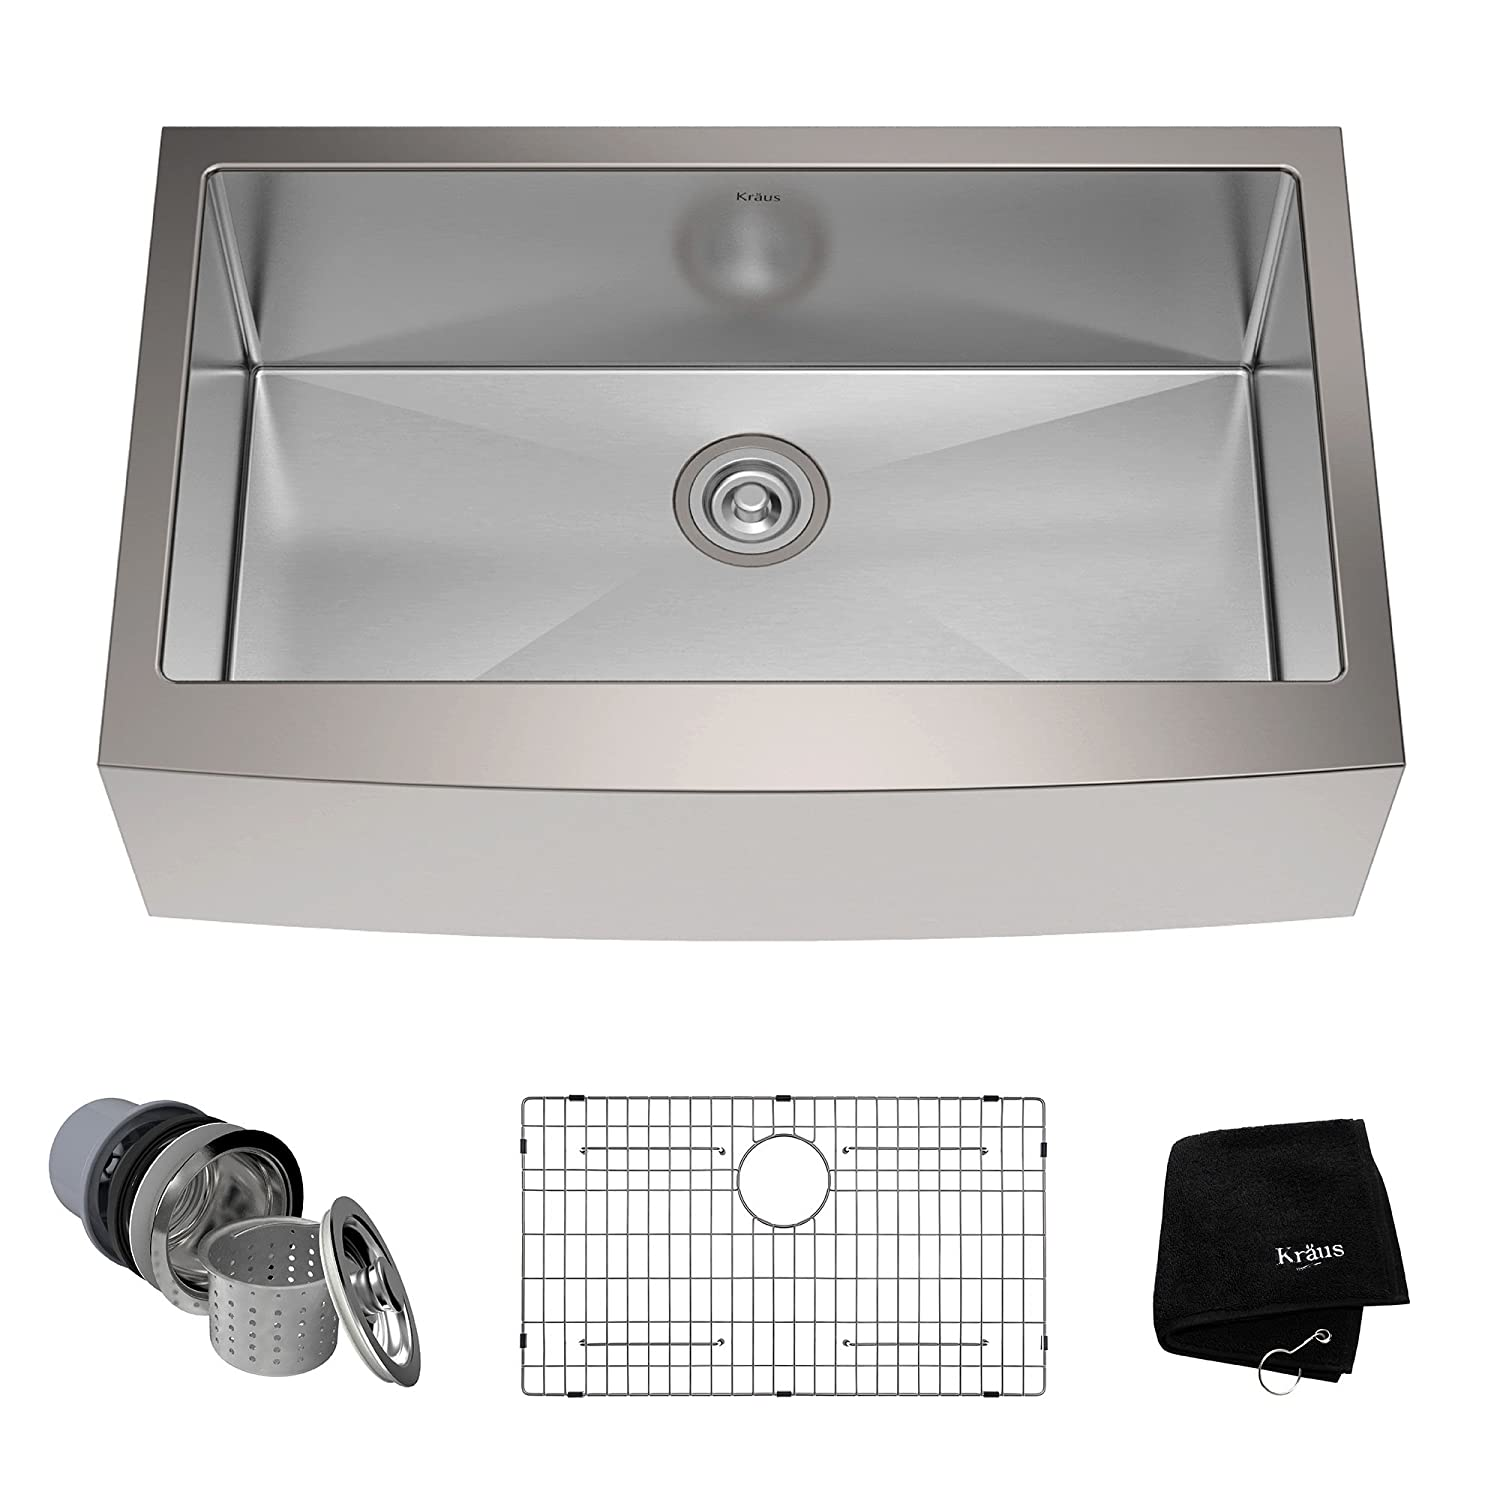 Kraus KHF200-33 33-inch Farmhouse Apron Single Bowl 16-gauge Stainless Steel Kitchen Sink